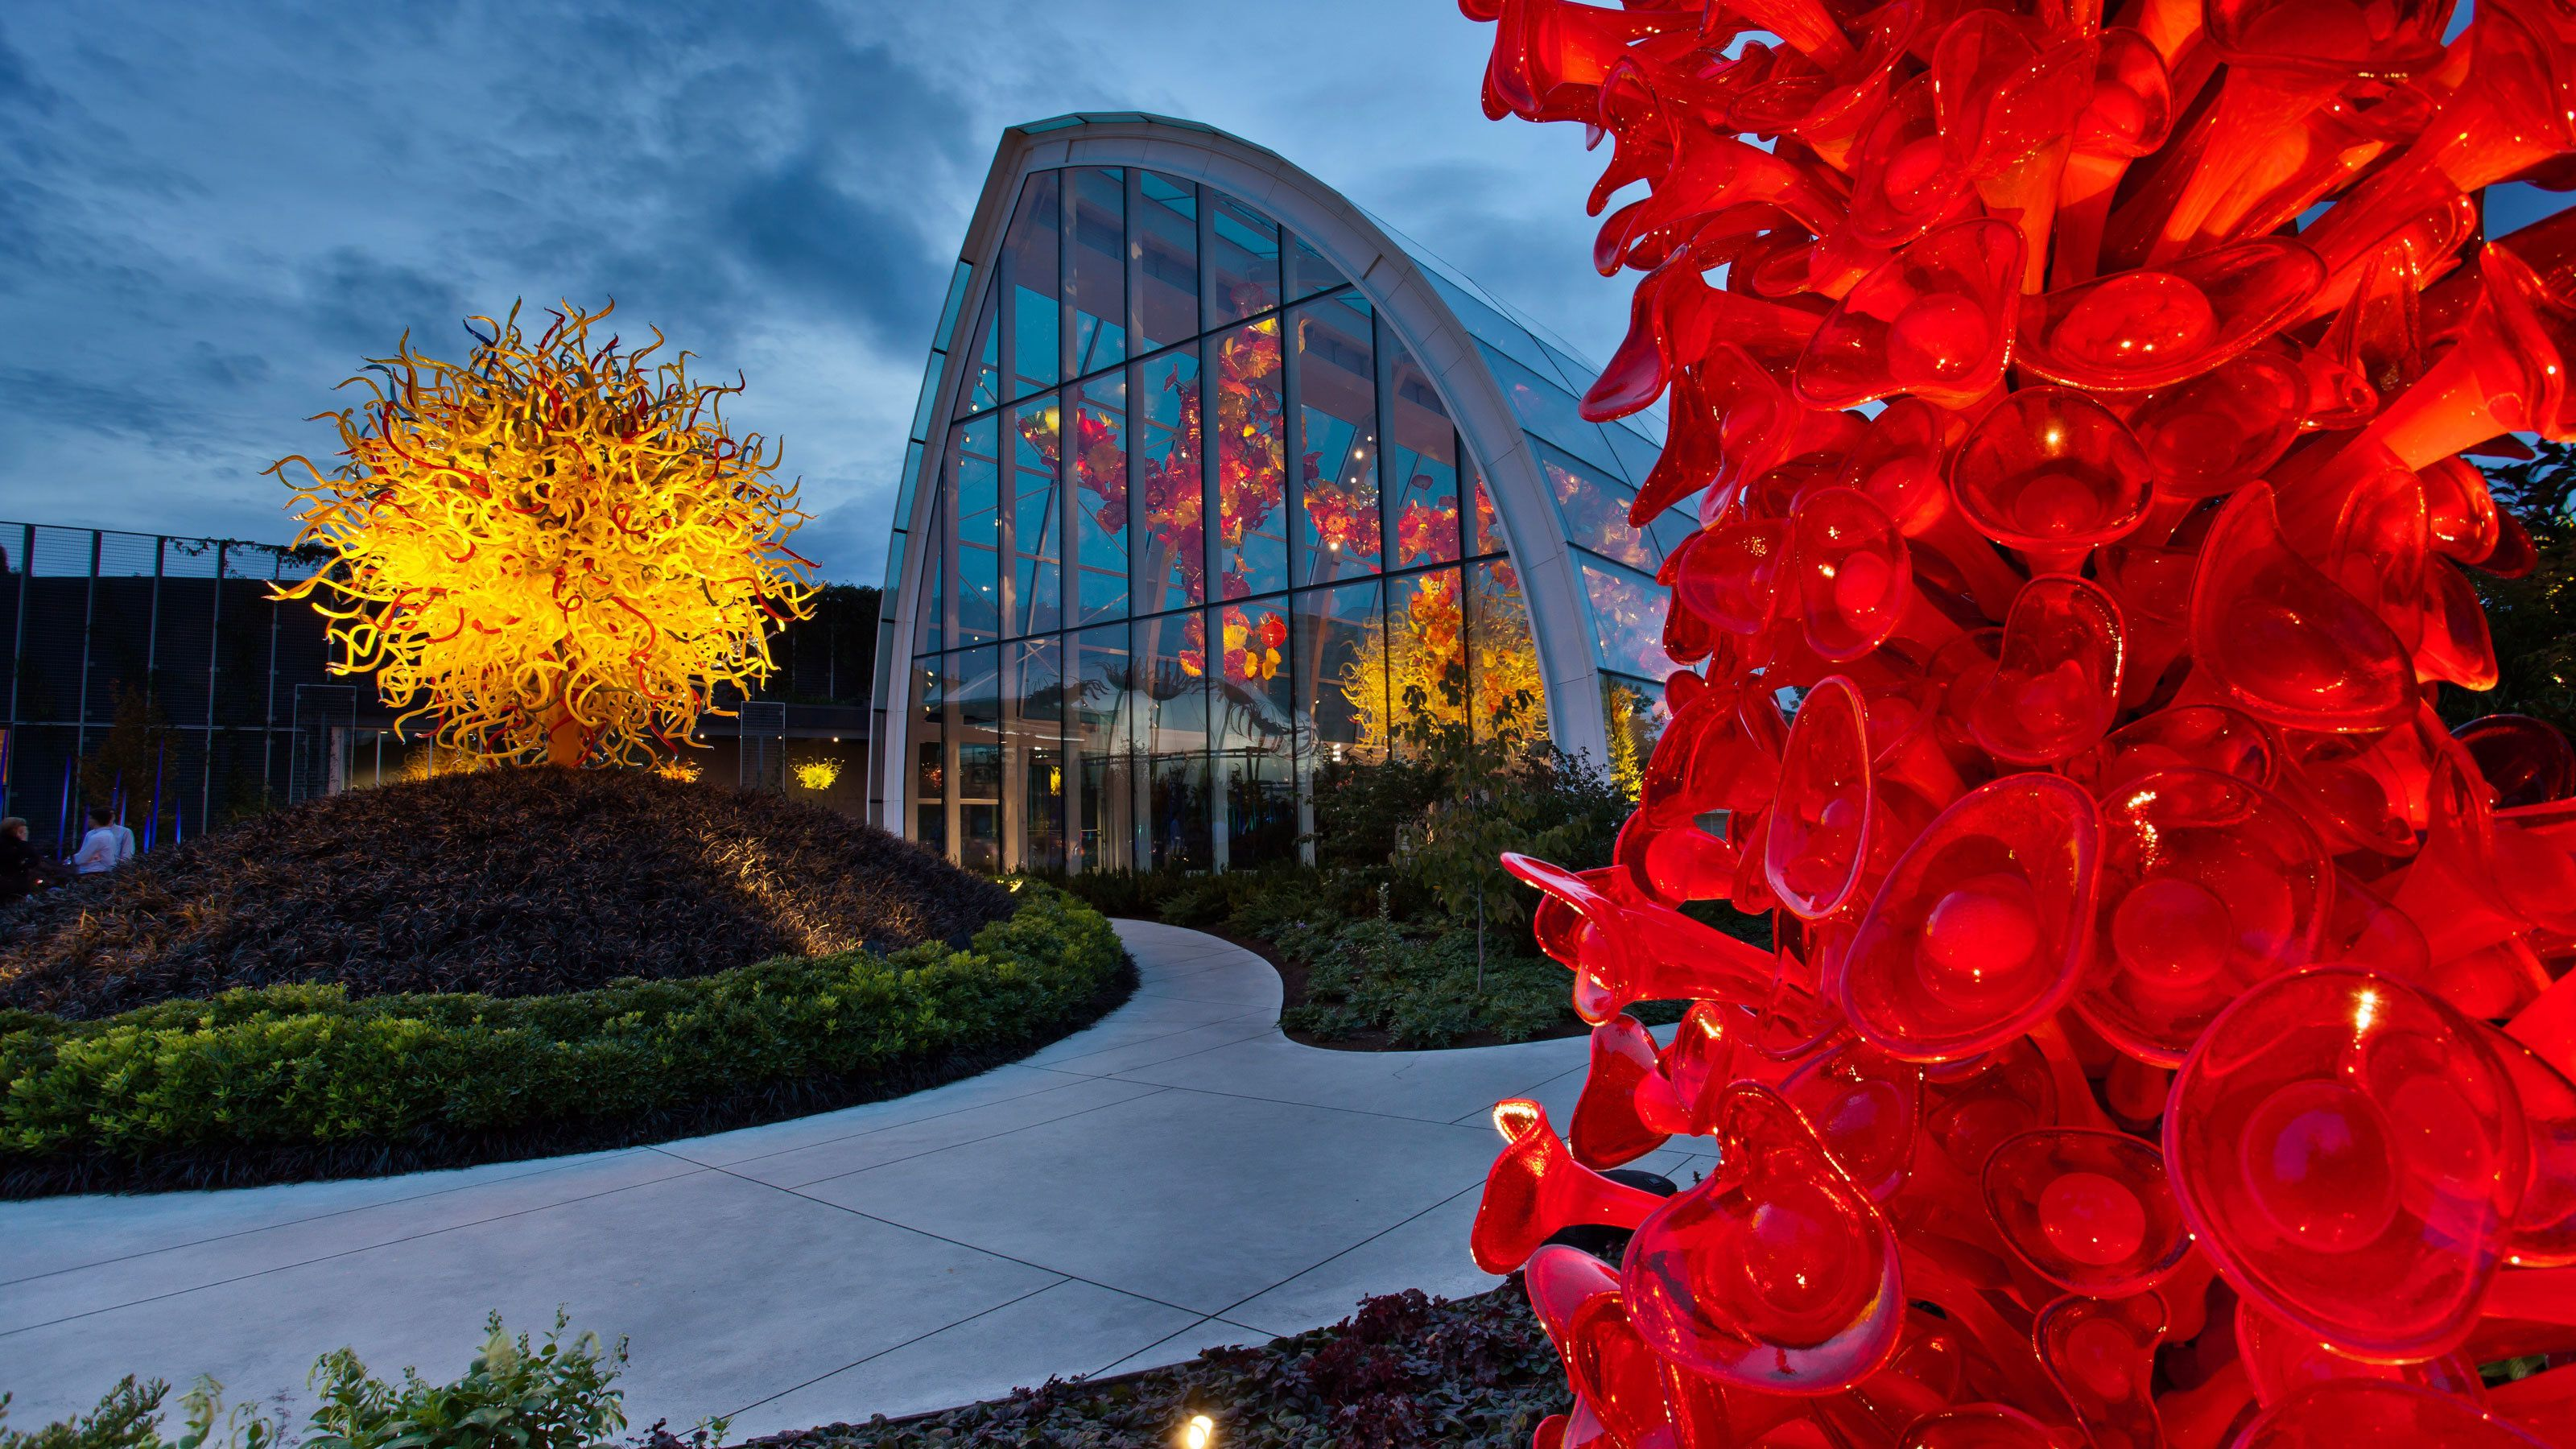 Vibrant glass sculpture at the Chihuly Garden and Glass in Seattle